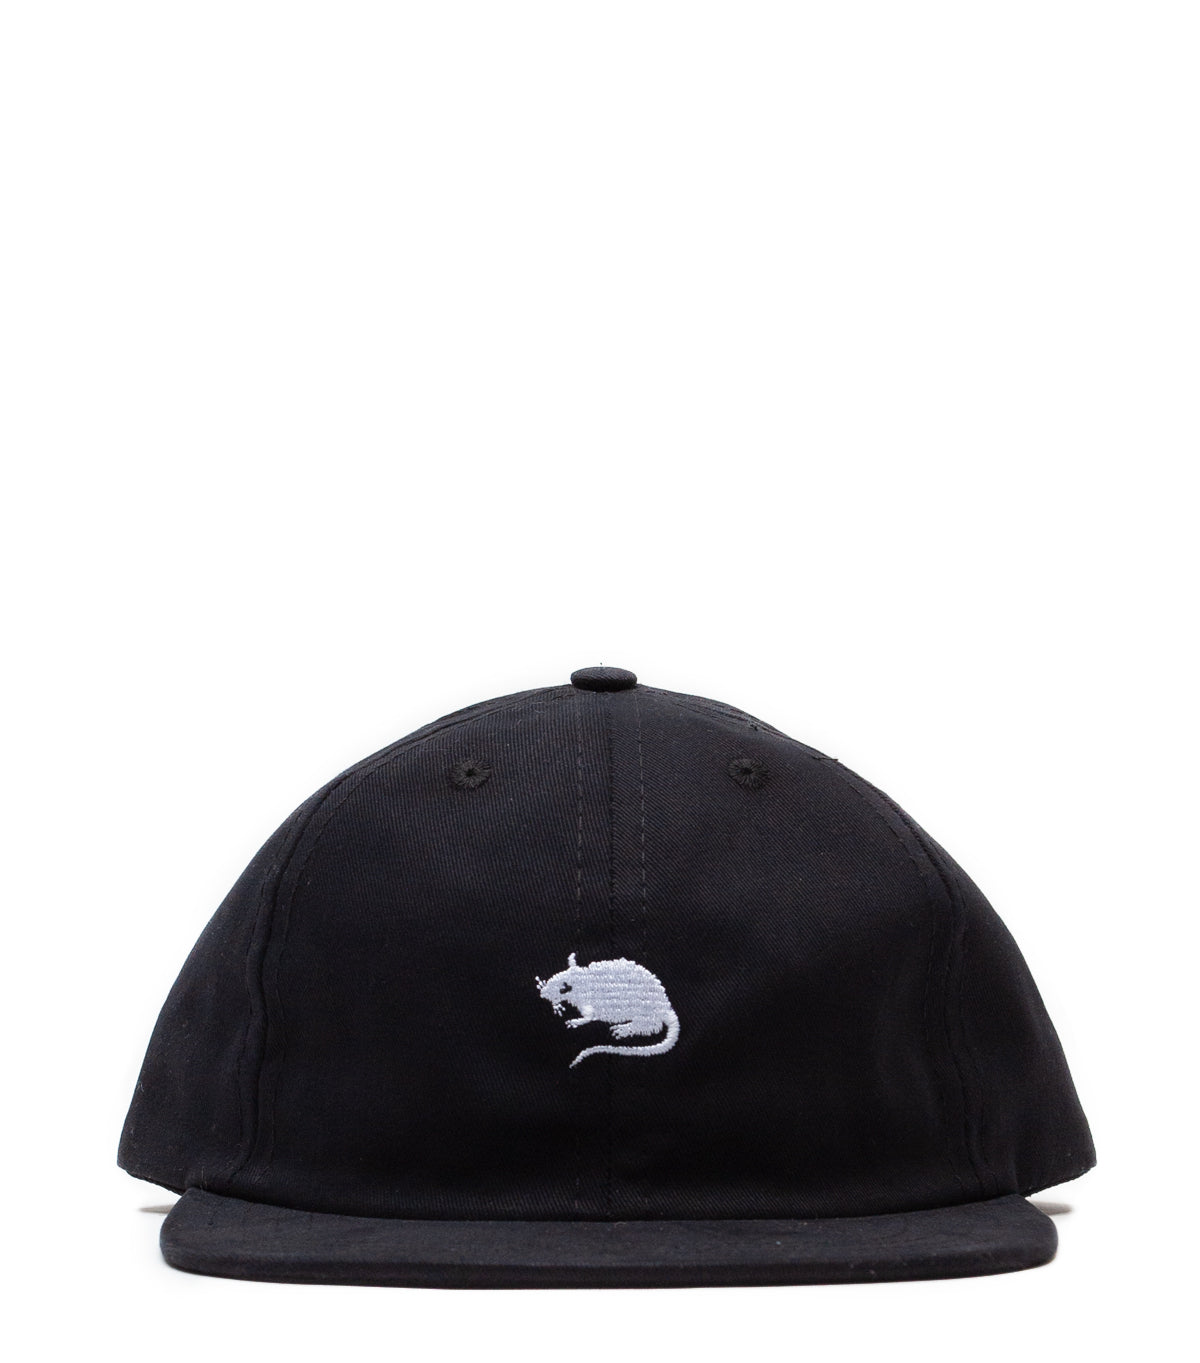 HUMAN MADE 6PANEL TWILL CAP #3 BLACK